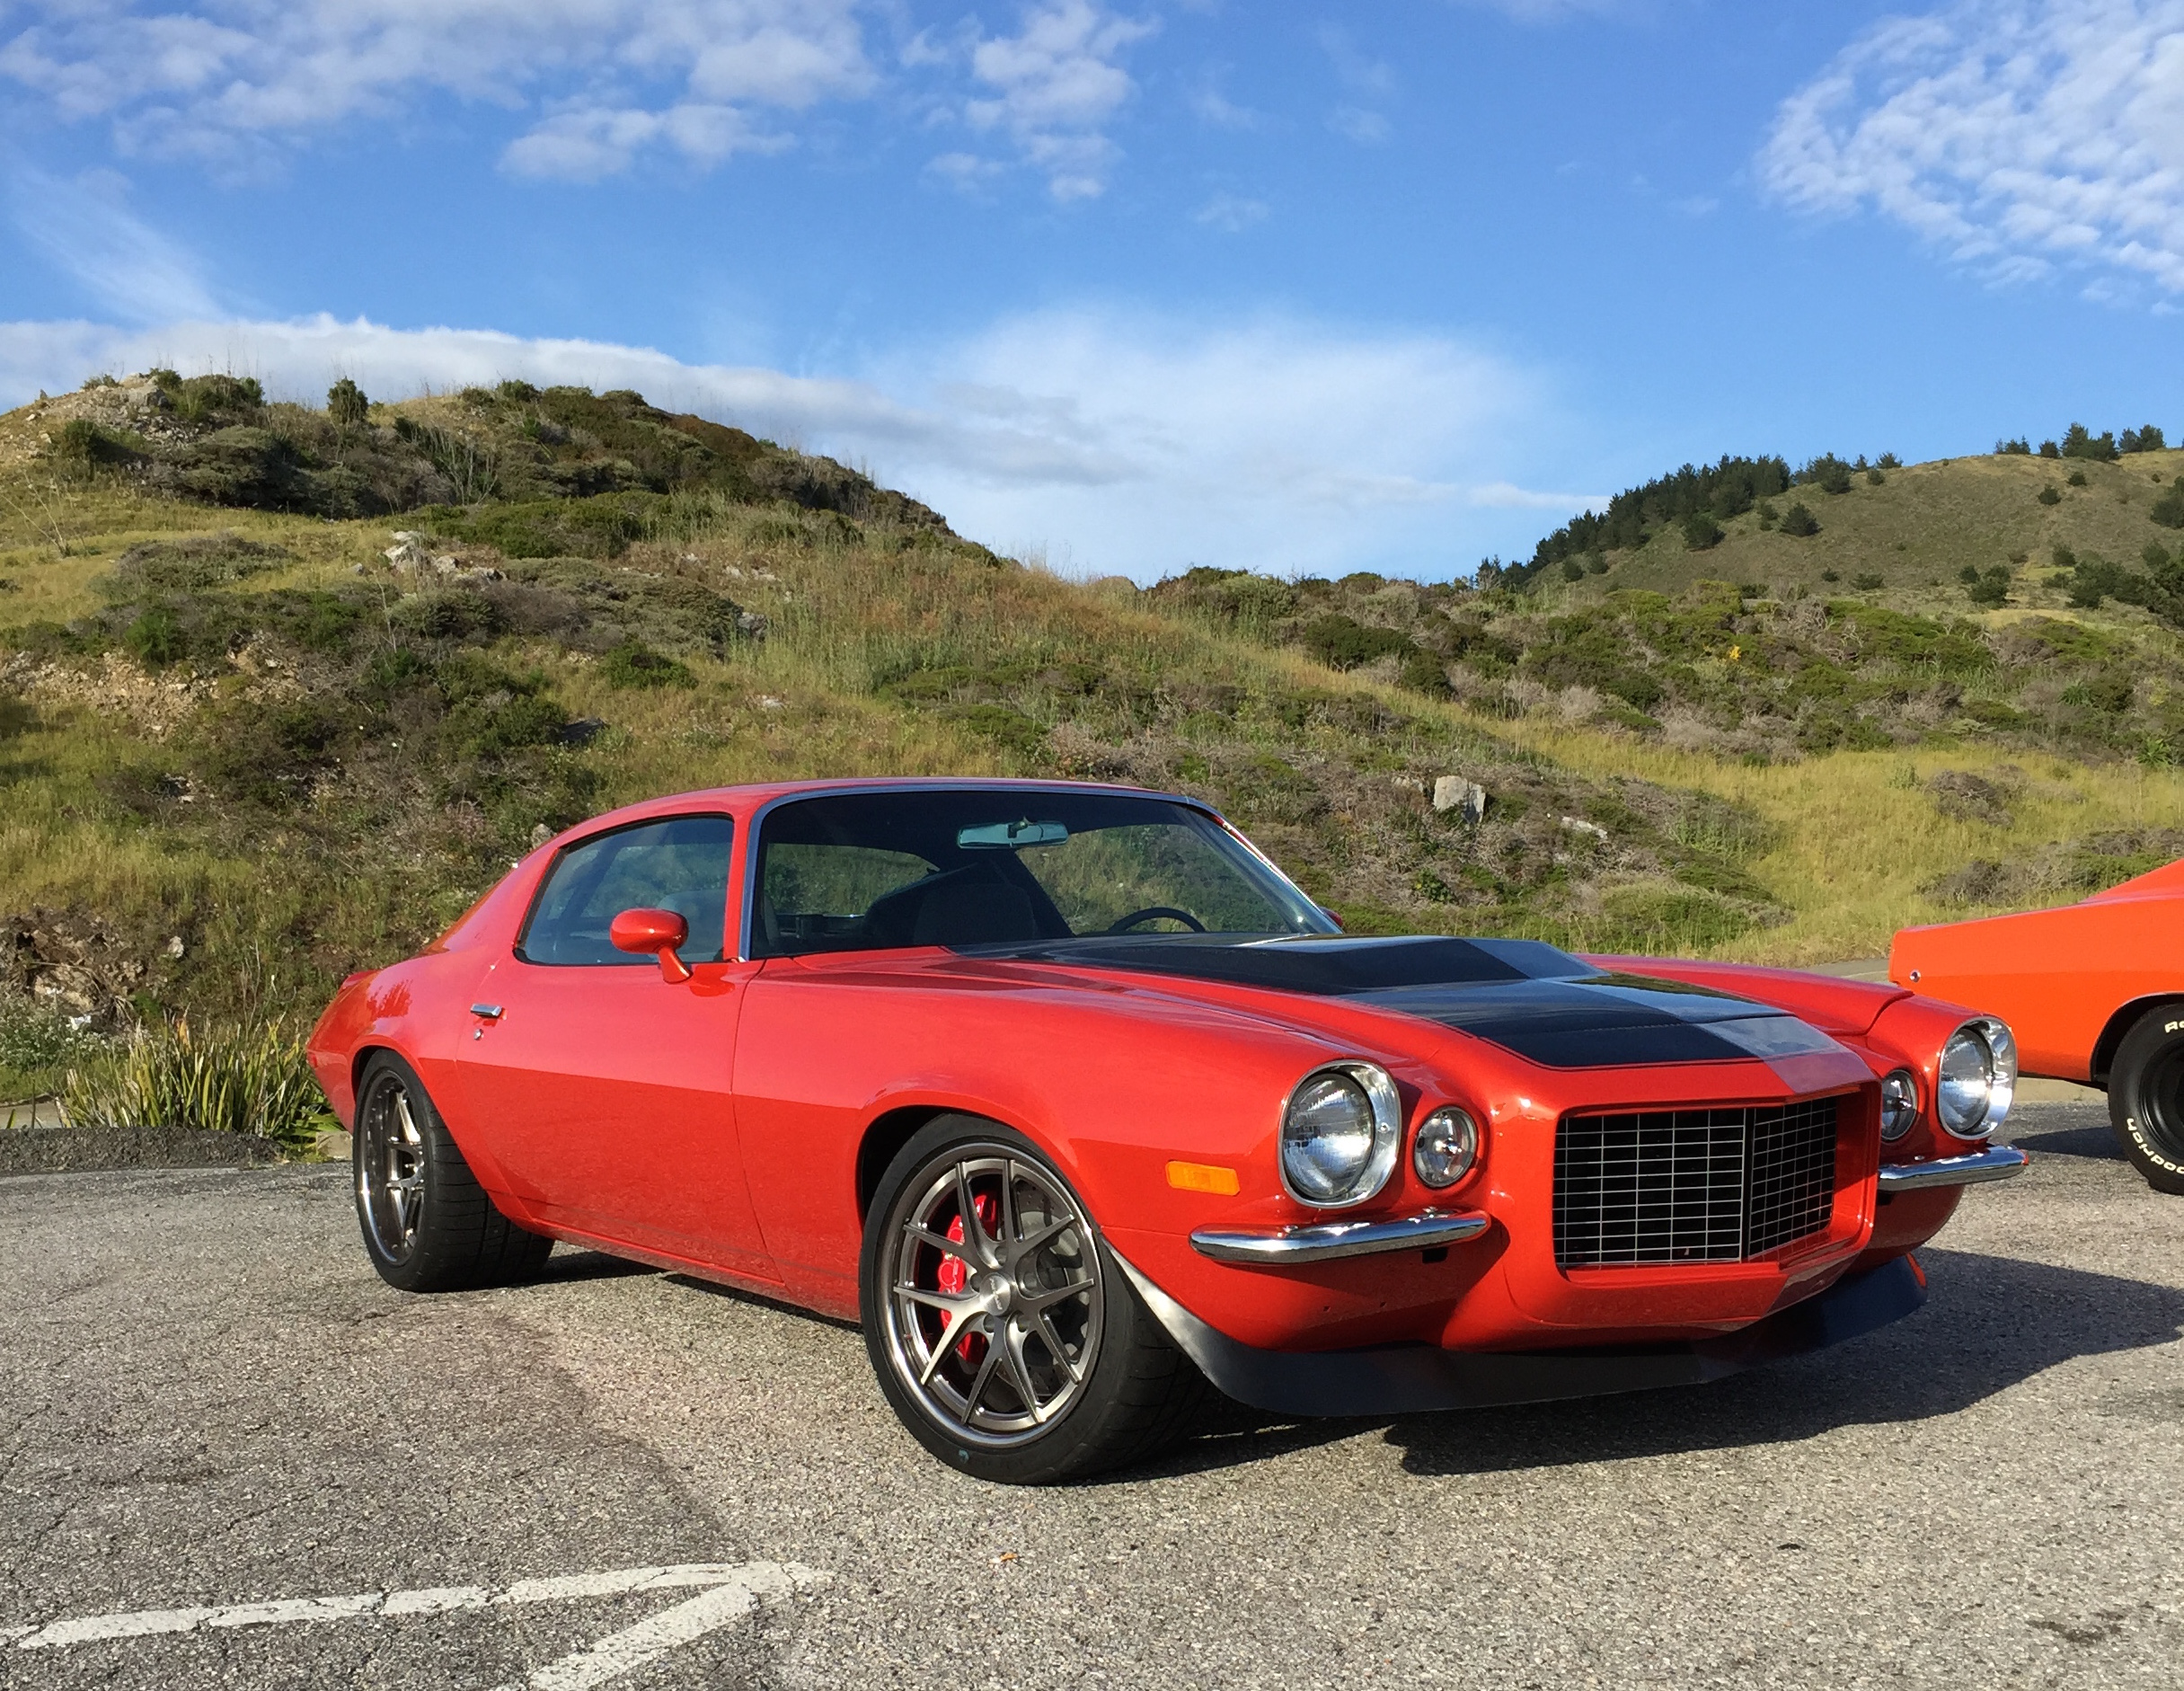 Modded 1970 Chevrolet Camaro Inferno